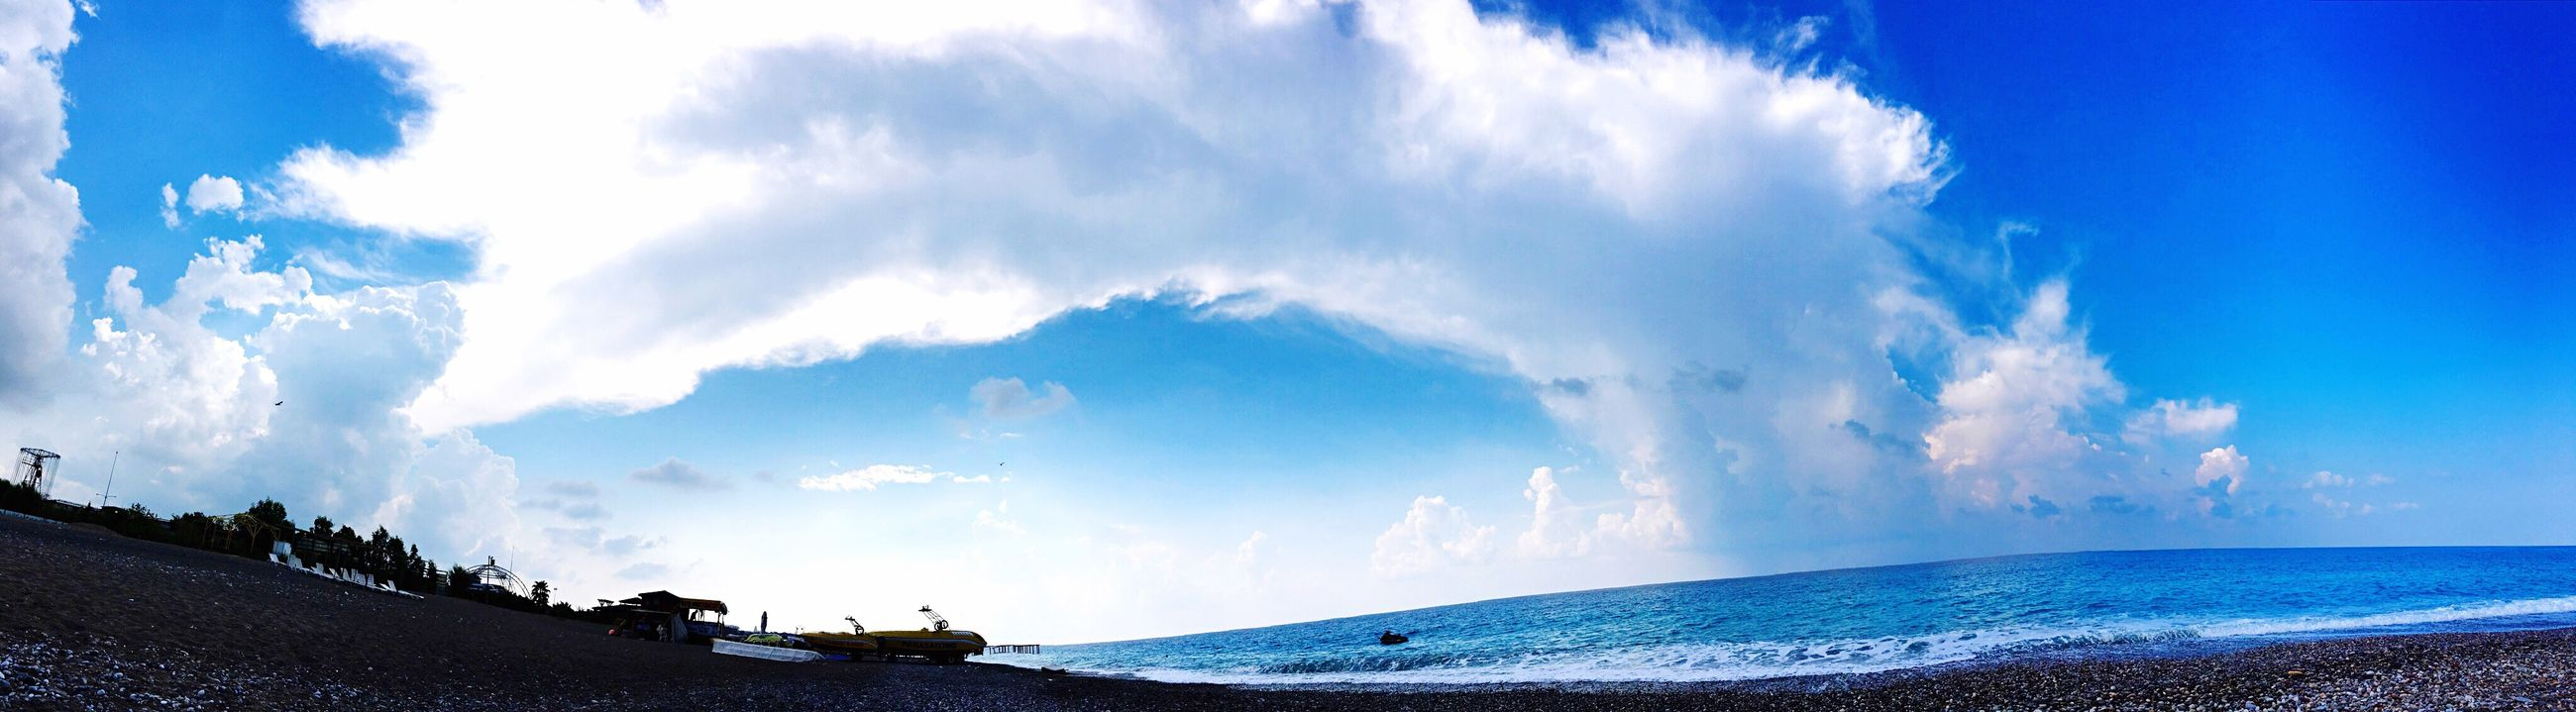 My Favorite Place First Eyeem Photo Sea And Sky Beach Beauty In Nature Pure Nature Hiding Sun Blue